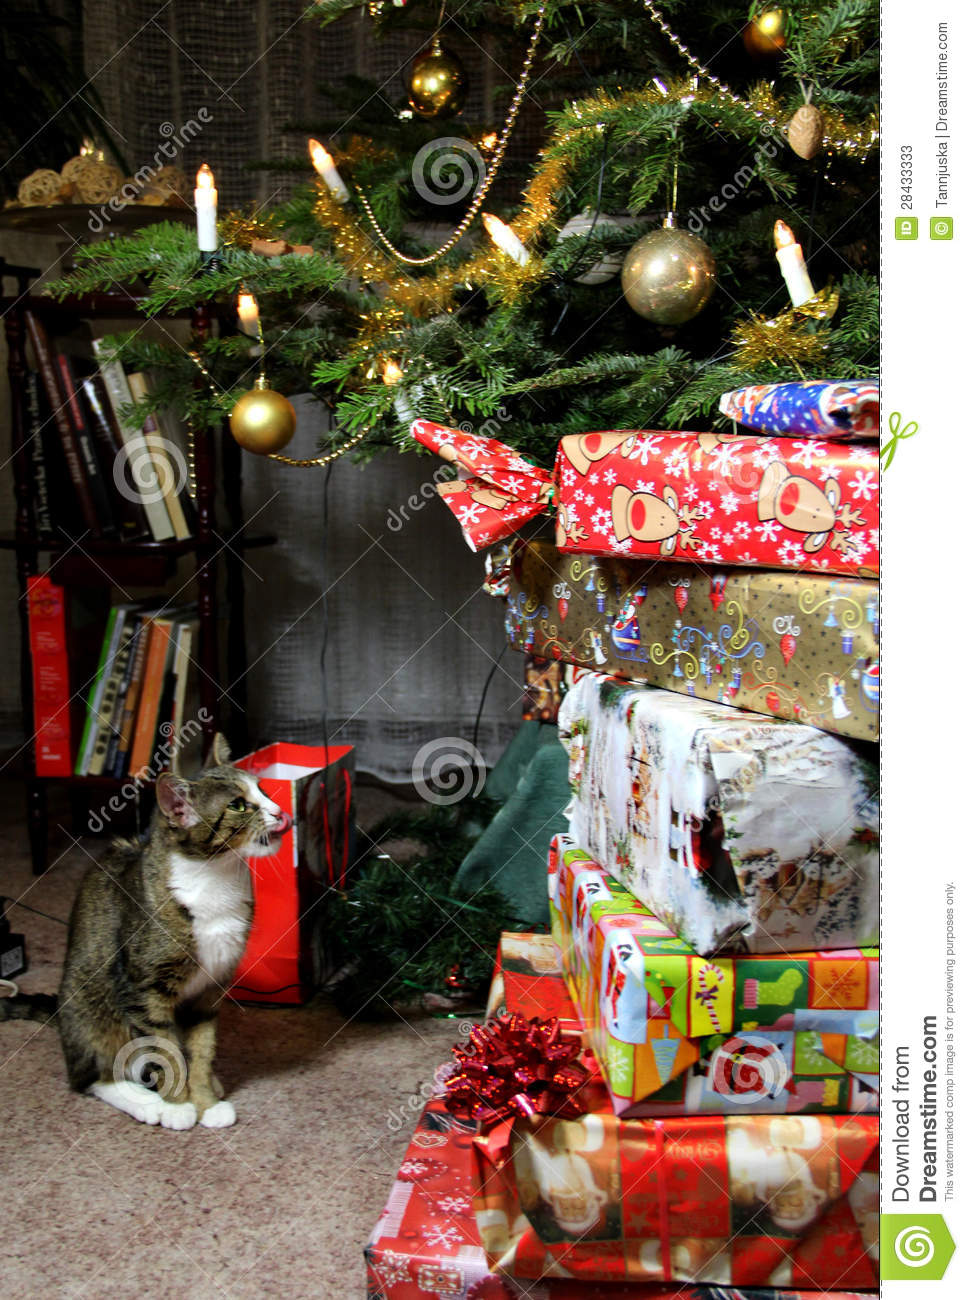 Christmas Gifts And Funny Cat Stock Image - Image of interior ...